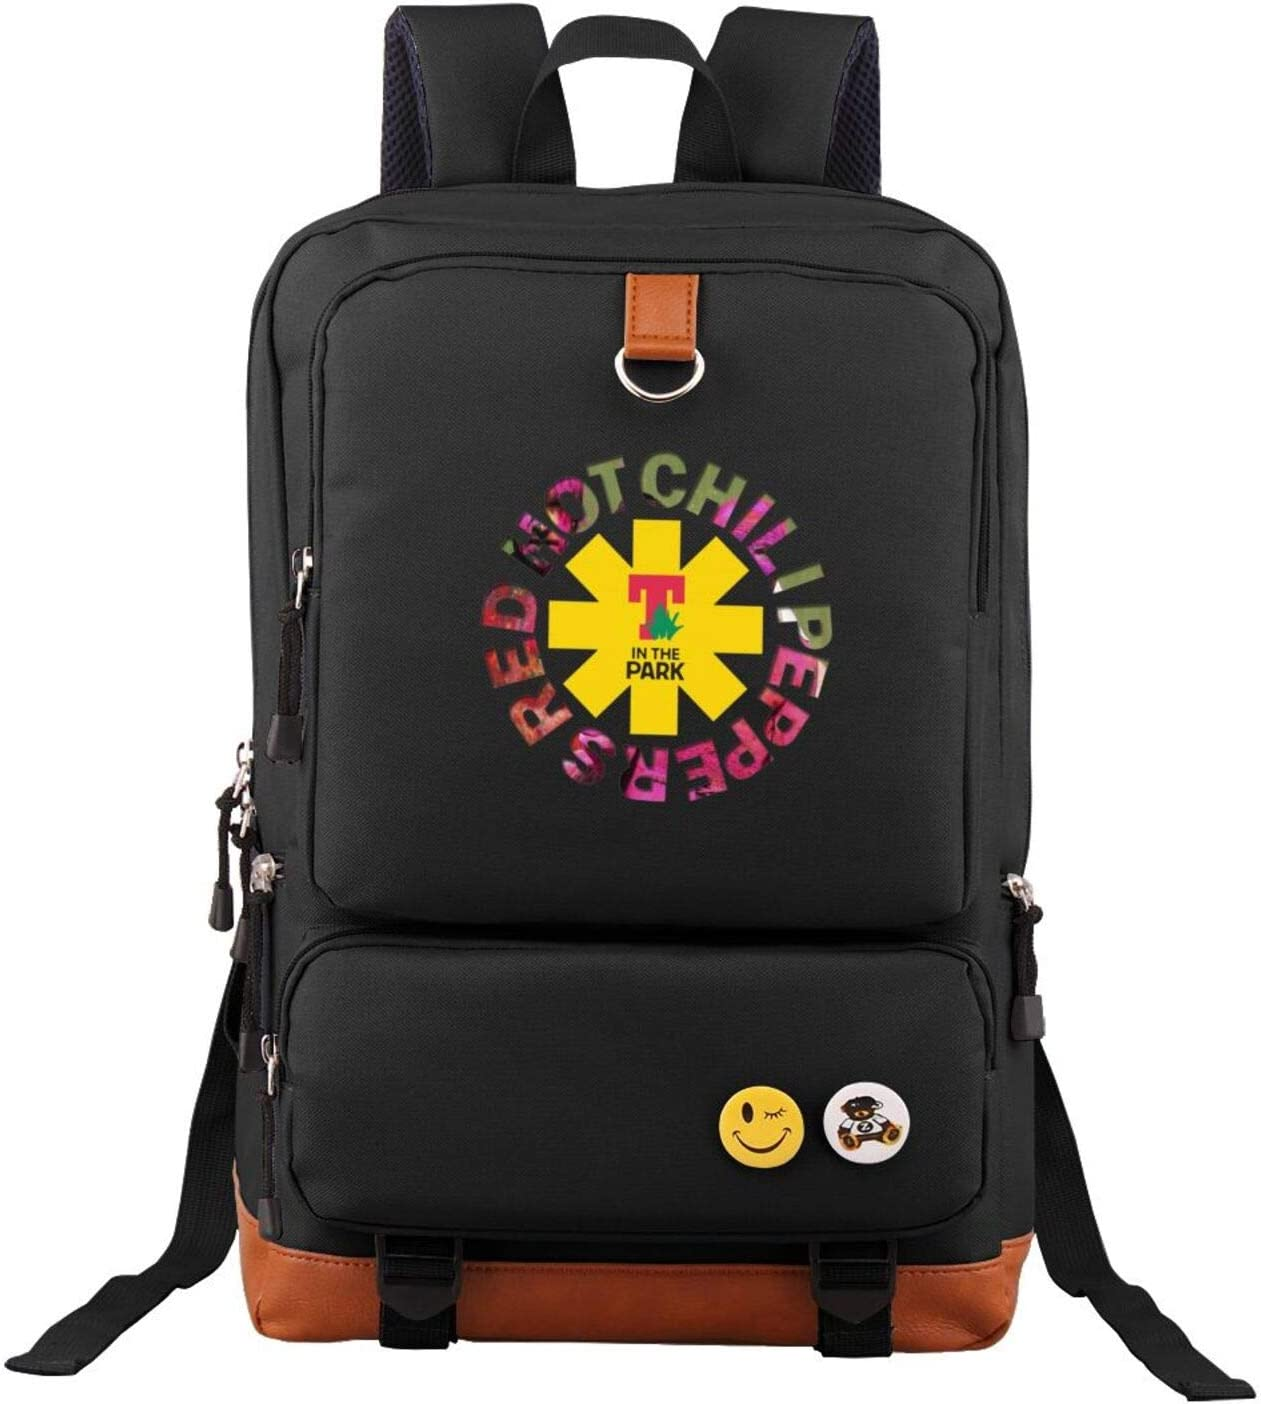 Black Unisex Red Hot Chili Peppers Backpack Vintage Laptop Backpack Anti-Theft Water Resistant Bag Casual School Backpack